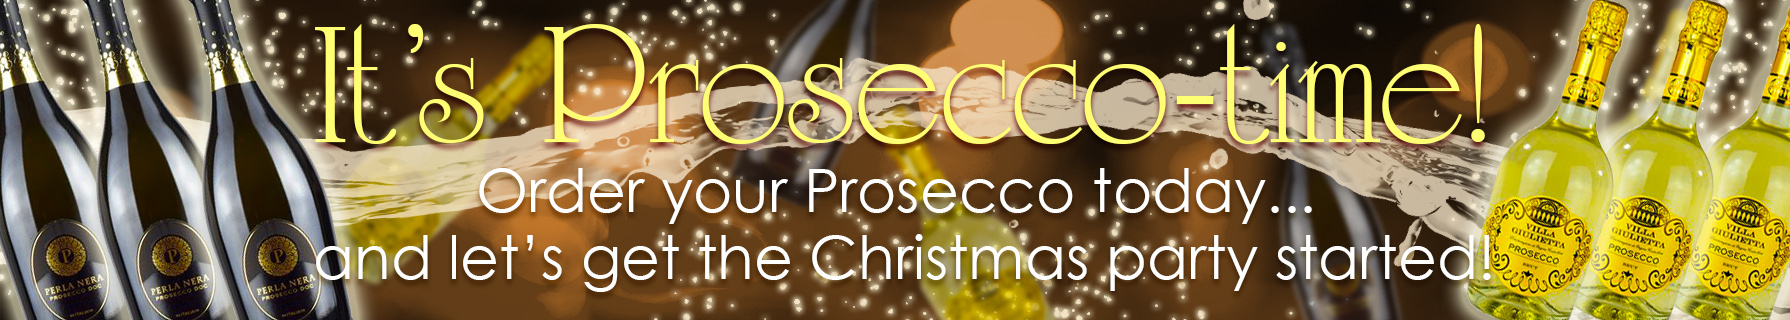 Order your prosecco now